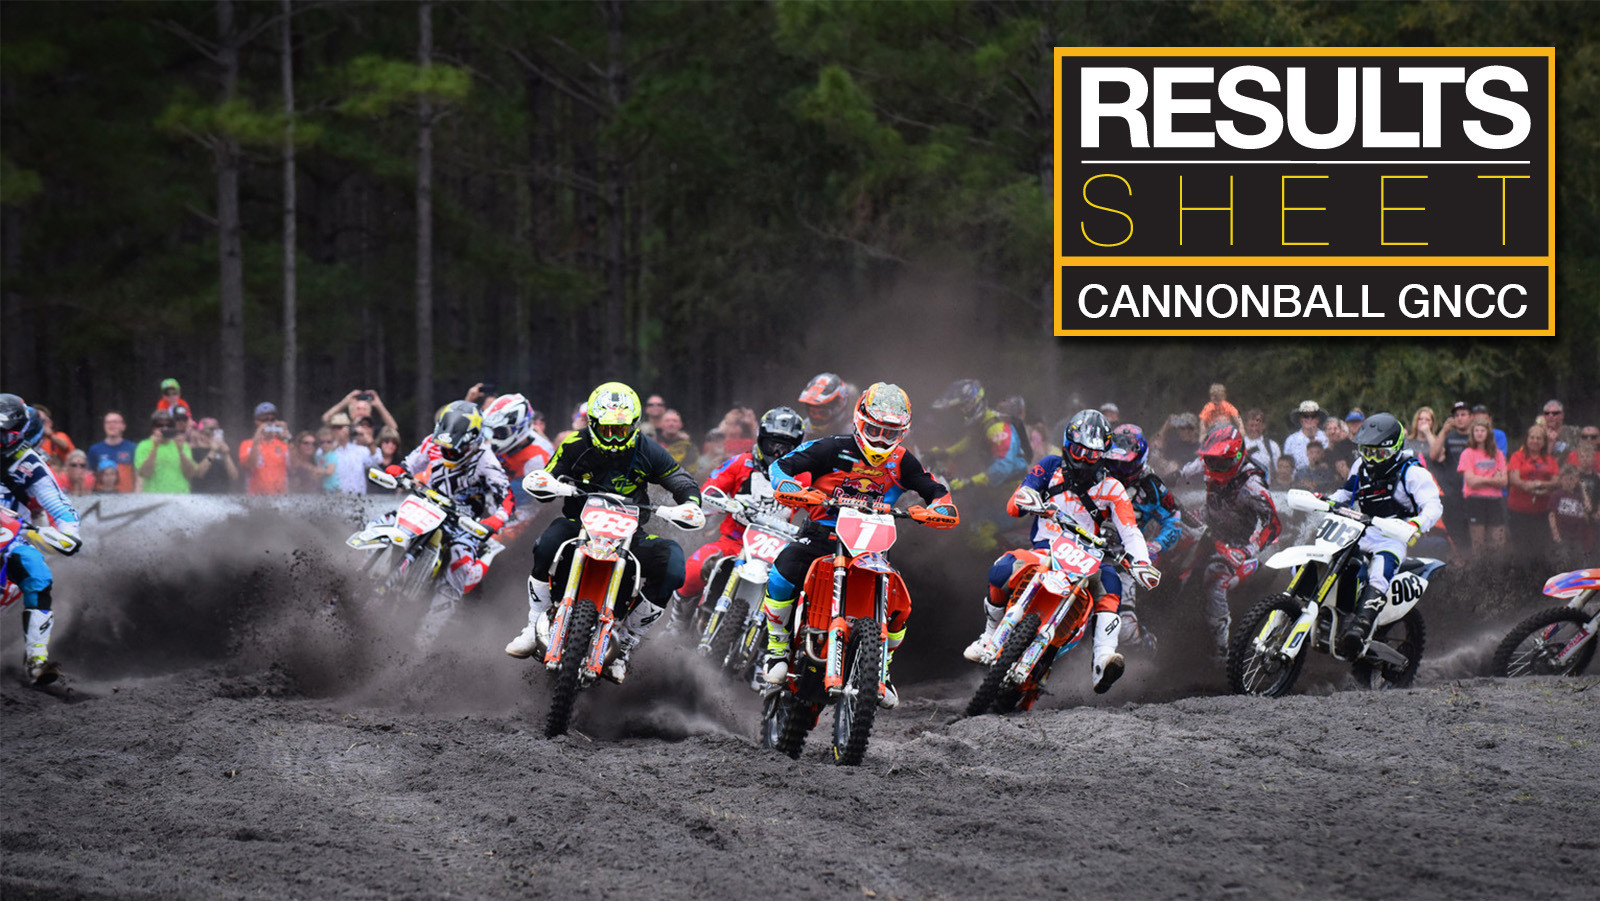 Results Sheet: Cannonball GNCC